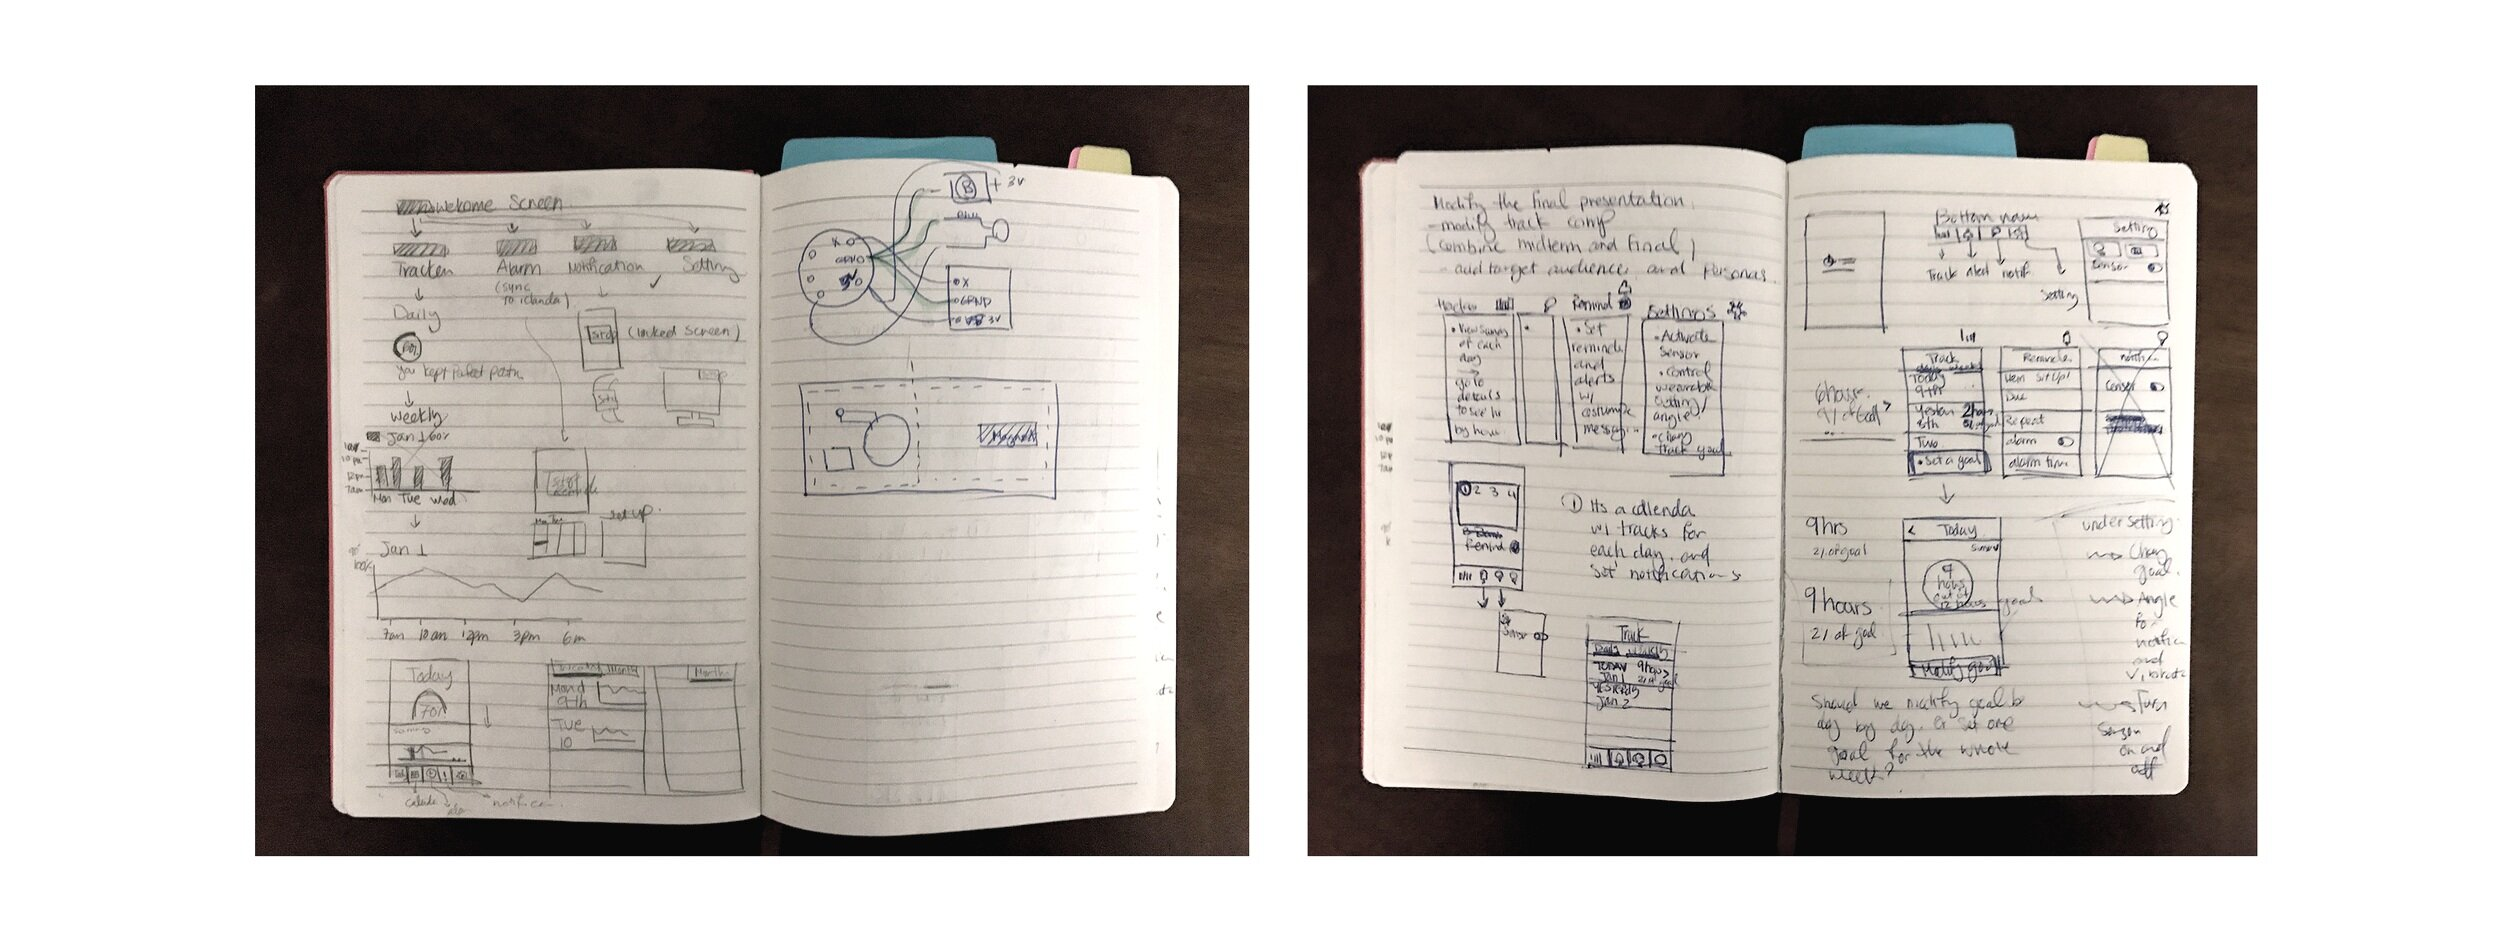 Brainstorming sketches for the mechanics of the wearable as well app IA.